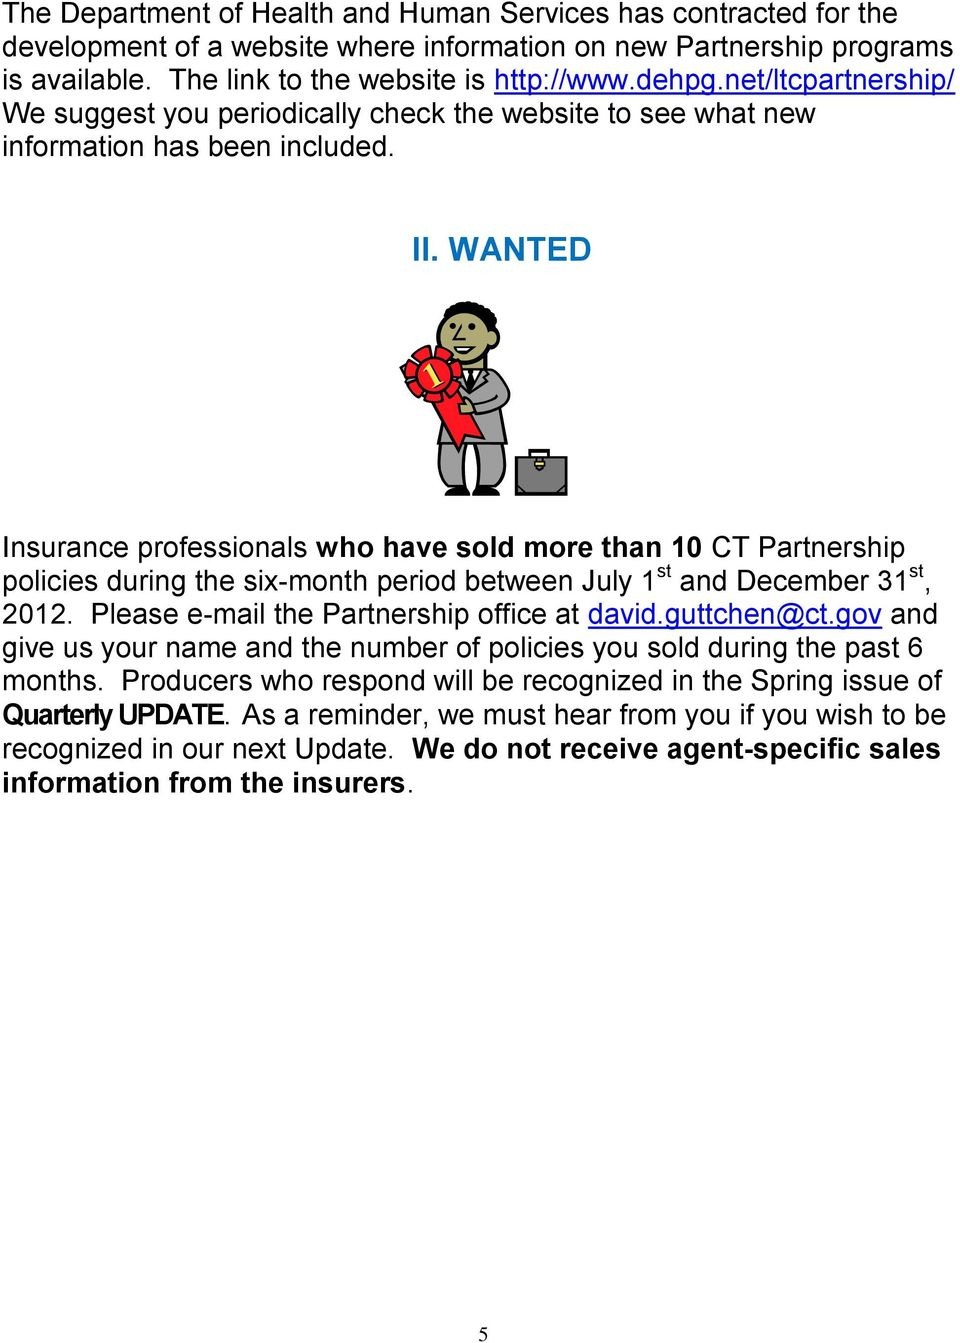 WANTED Insurance professionals who have sold more than 10 CT Partnership policies during the six-month period between July 1 st and December 31 st, 2012. Please e-mail the Partnership office at david.